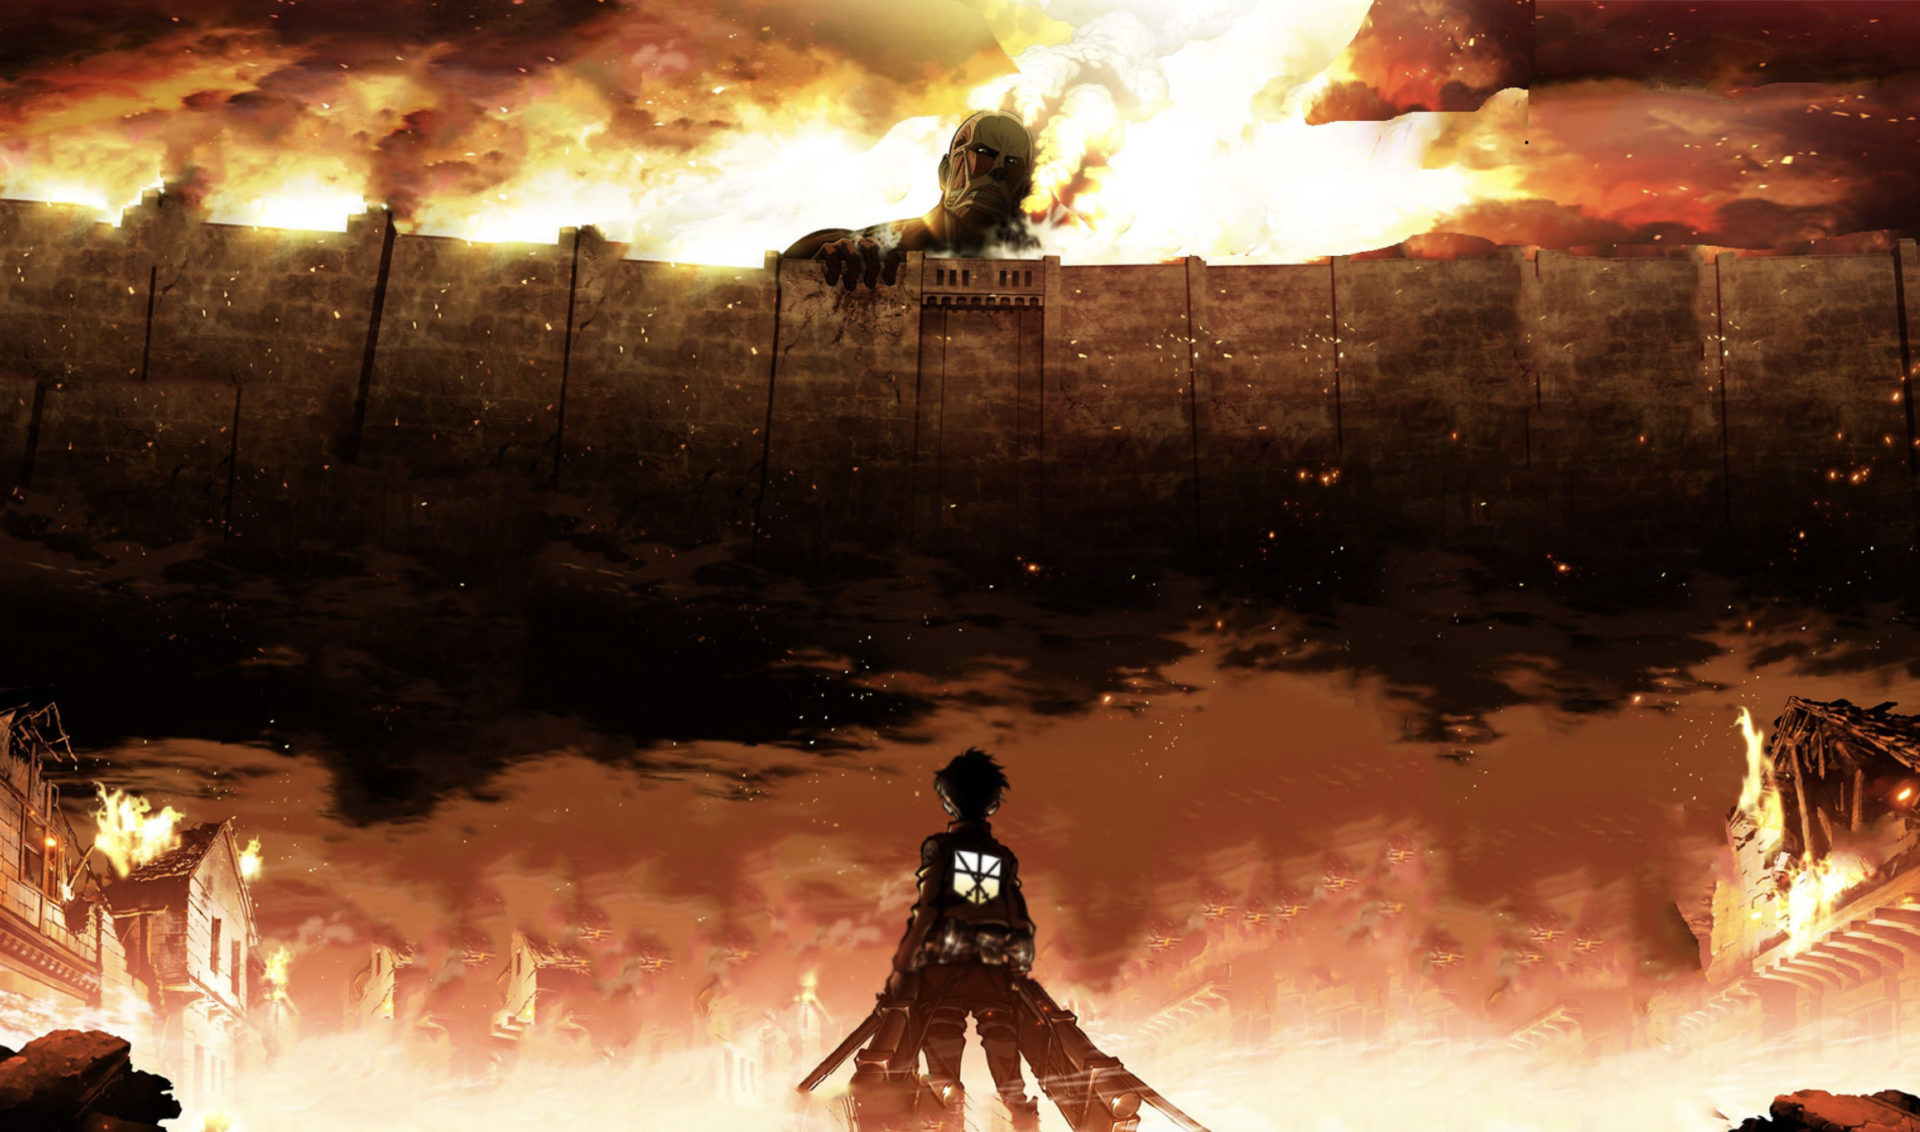 Promotional image of Attack on Titan Season 1 featuring Eren Jaegar.